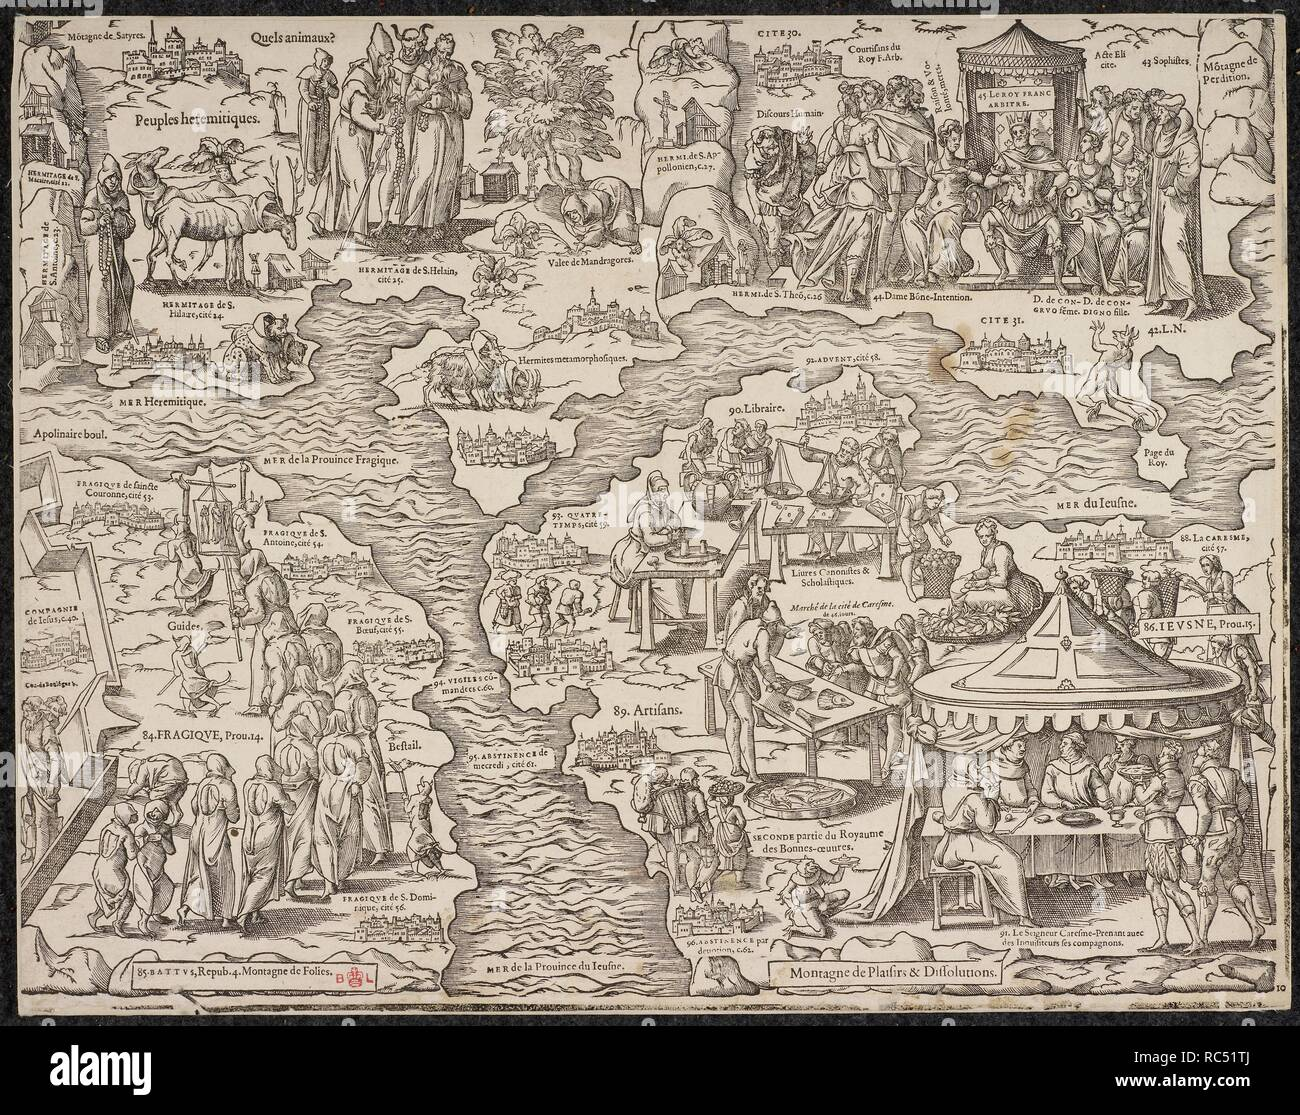 Allegorical map, a satire on the Roman Catholic church from the 16th century. . Mappemonde nouvelle papistique. [Geneva], [1566?]. Mappemonde nouvelle papistique. A satire on the Roman Catholic Church by T. de Beza or P. Viret? in the form of an allegorical map, with letterpress on three sides. Bèze, Théodore de, 1519-1605. Viret, Pierre, 1511-1571. Source: C.160.c.7 10. Language: French. Stock Photo